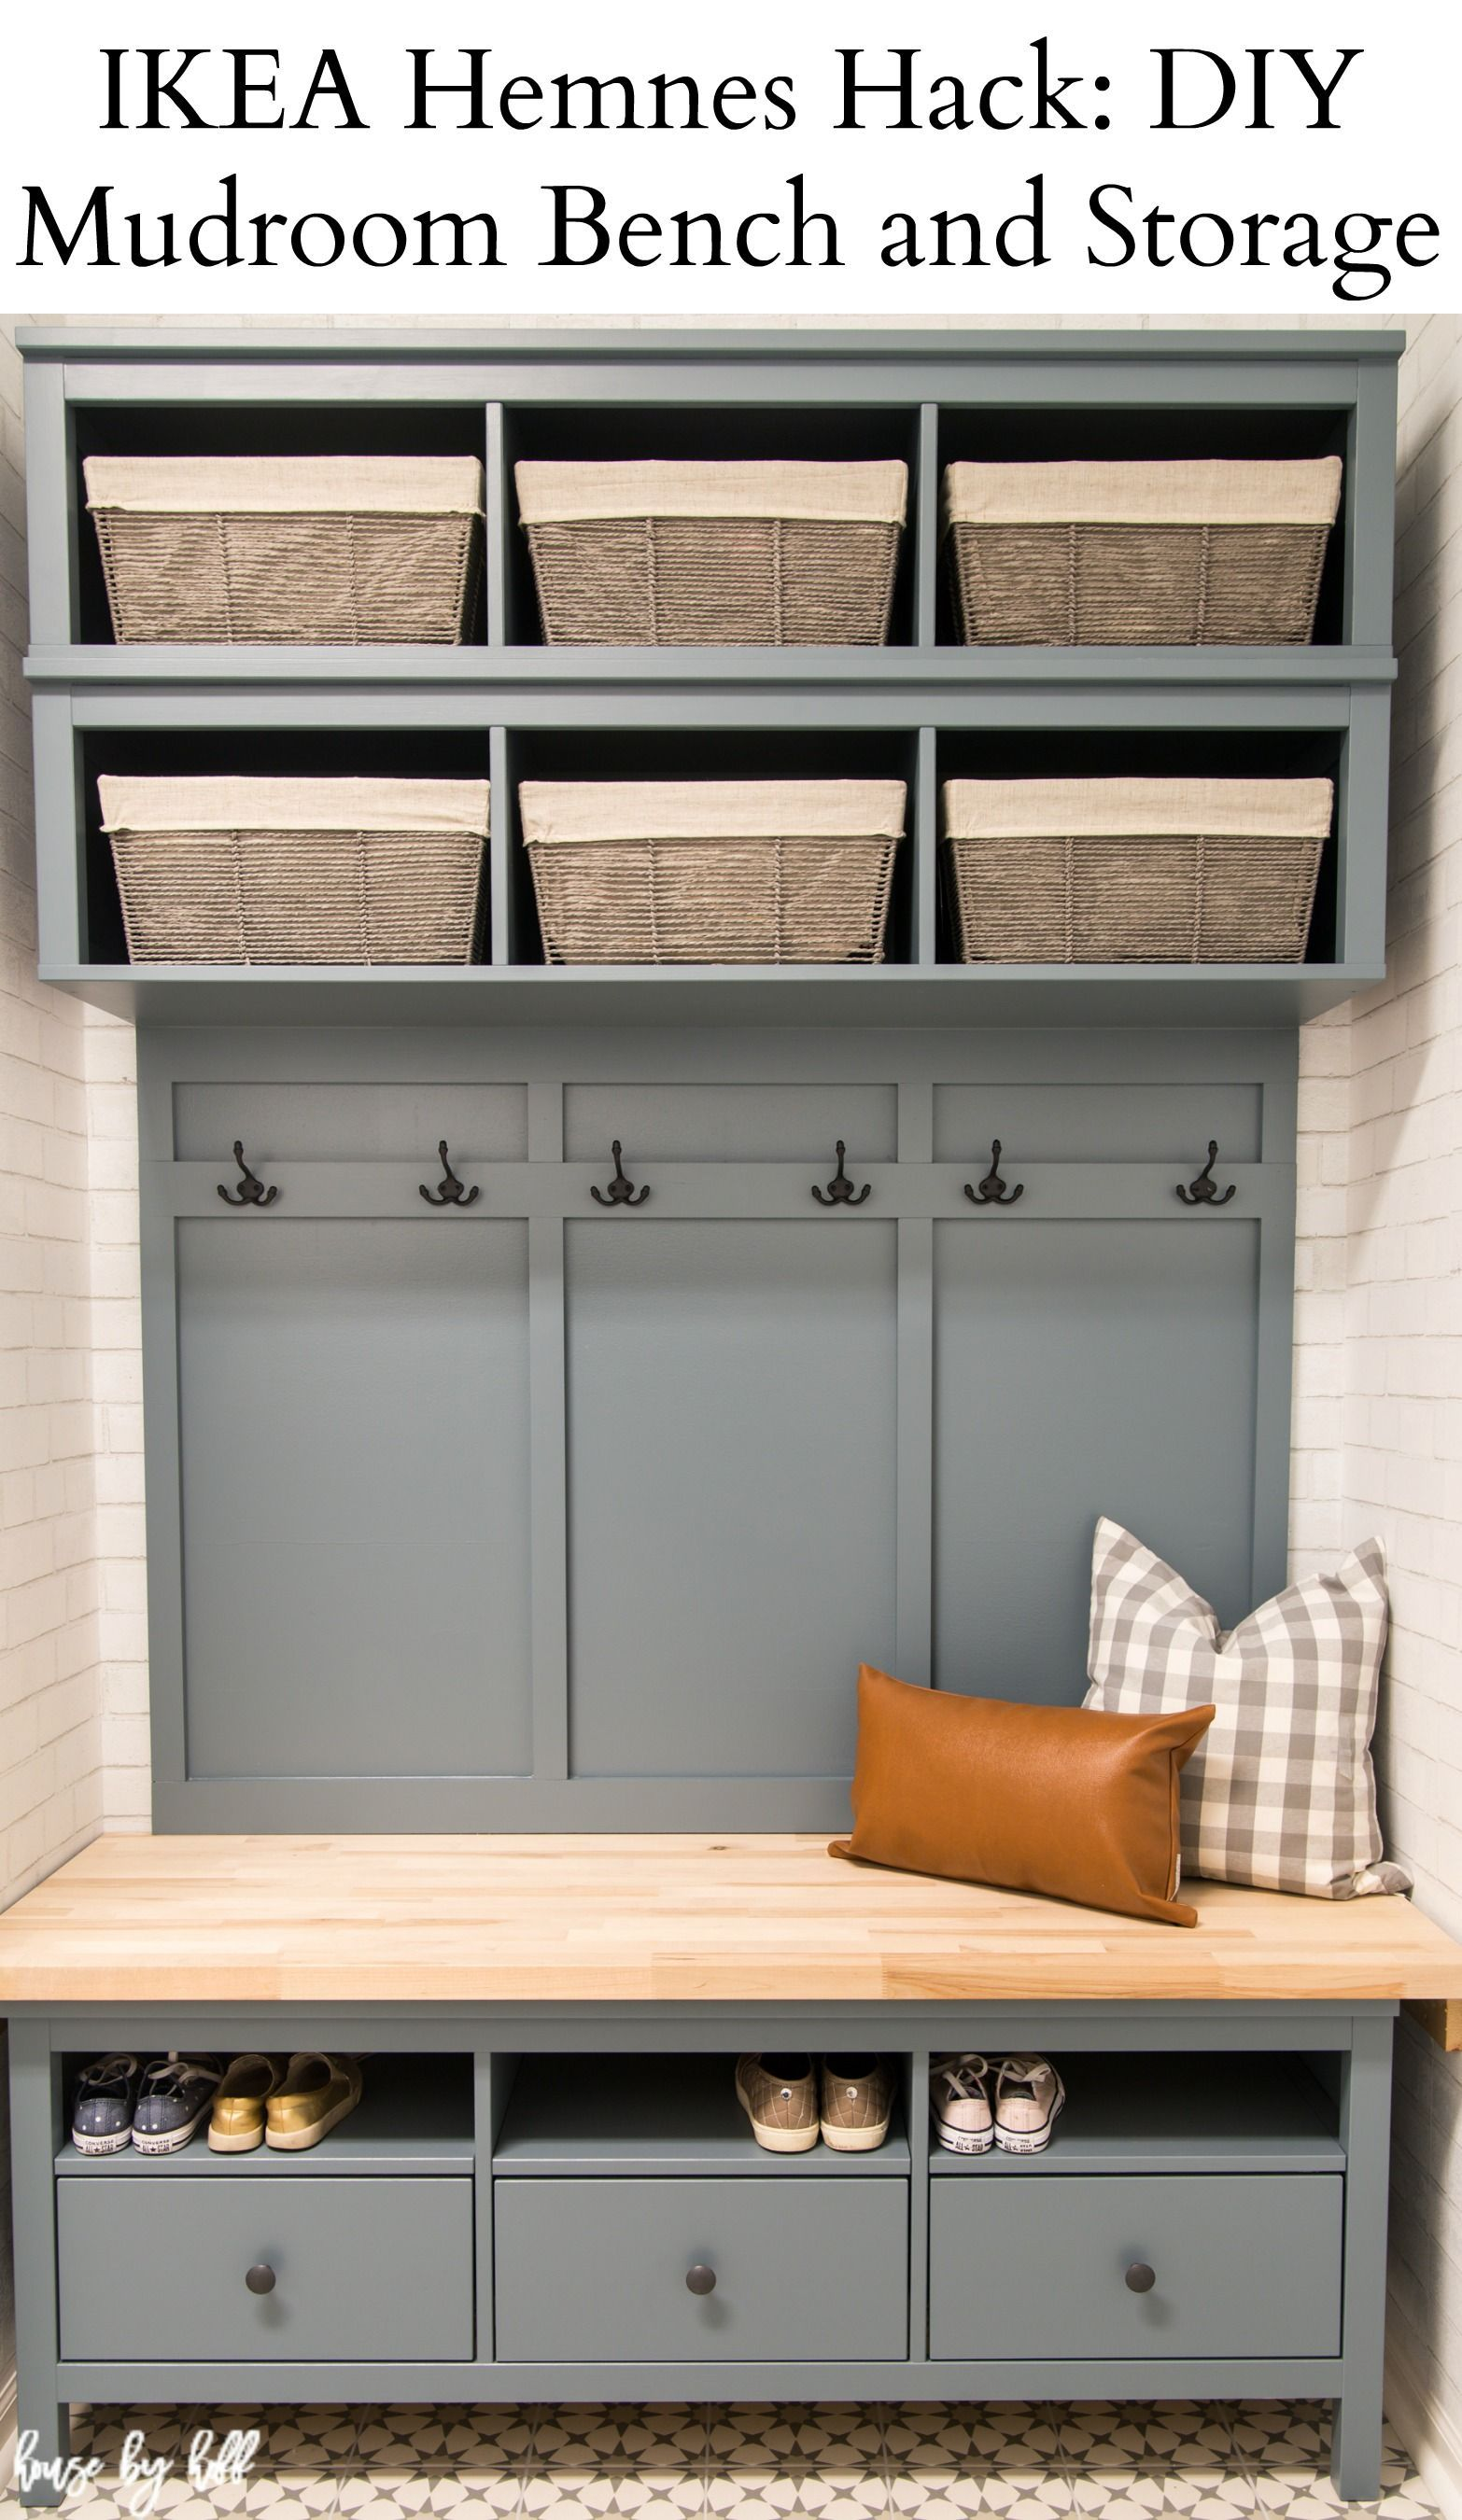 Ikea Hemnes Hack Diy Mudroom Bench And Storage I Like The Middle Back Round Area On This With The Hooks Diy Mudroom Bench Ikea Hemnes Hack Mudroom Makeover